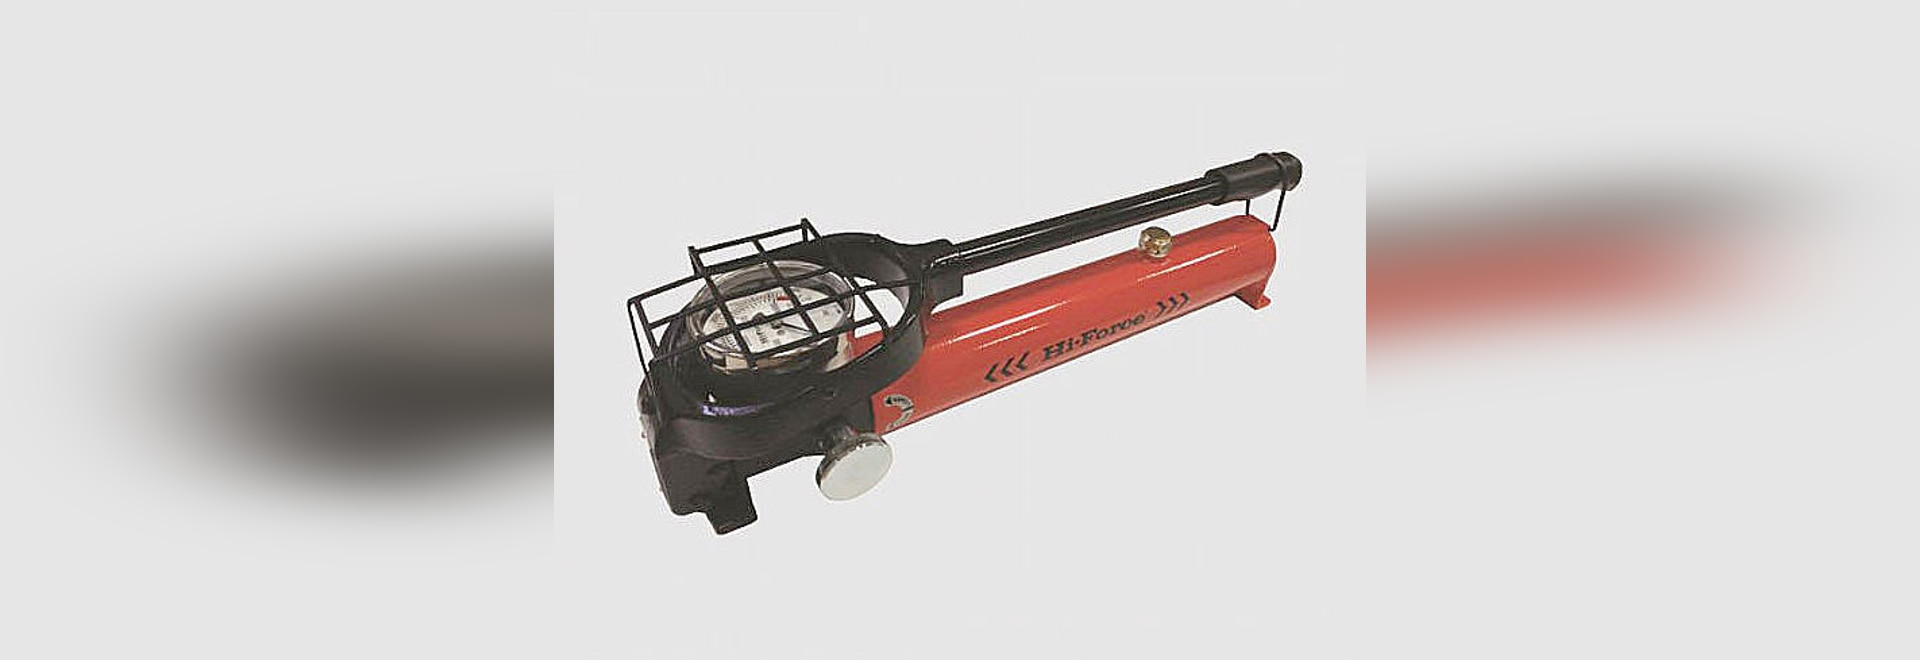 New HPX2800 manually operated hand pump